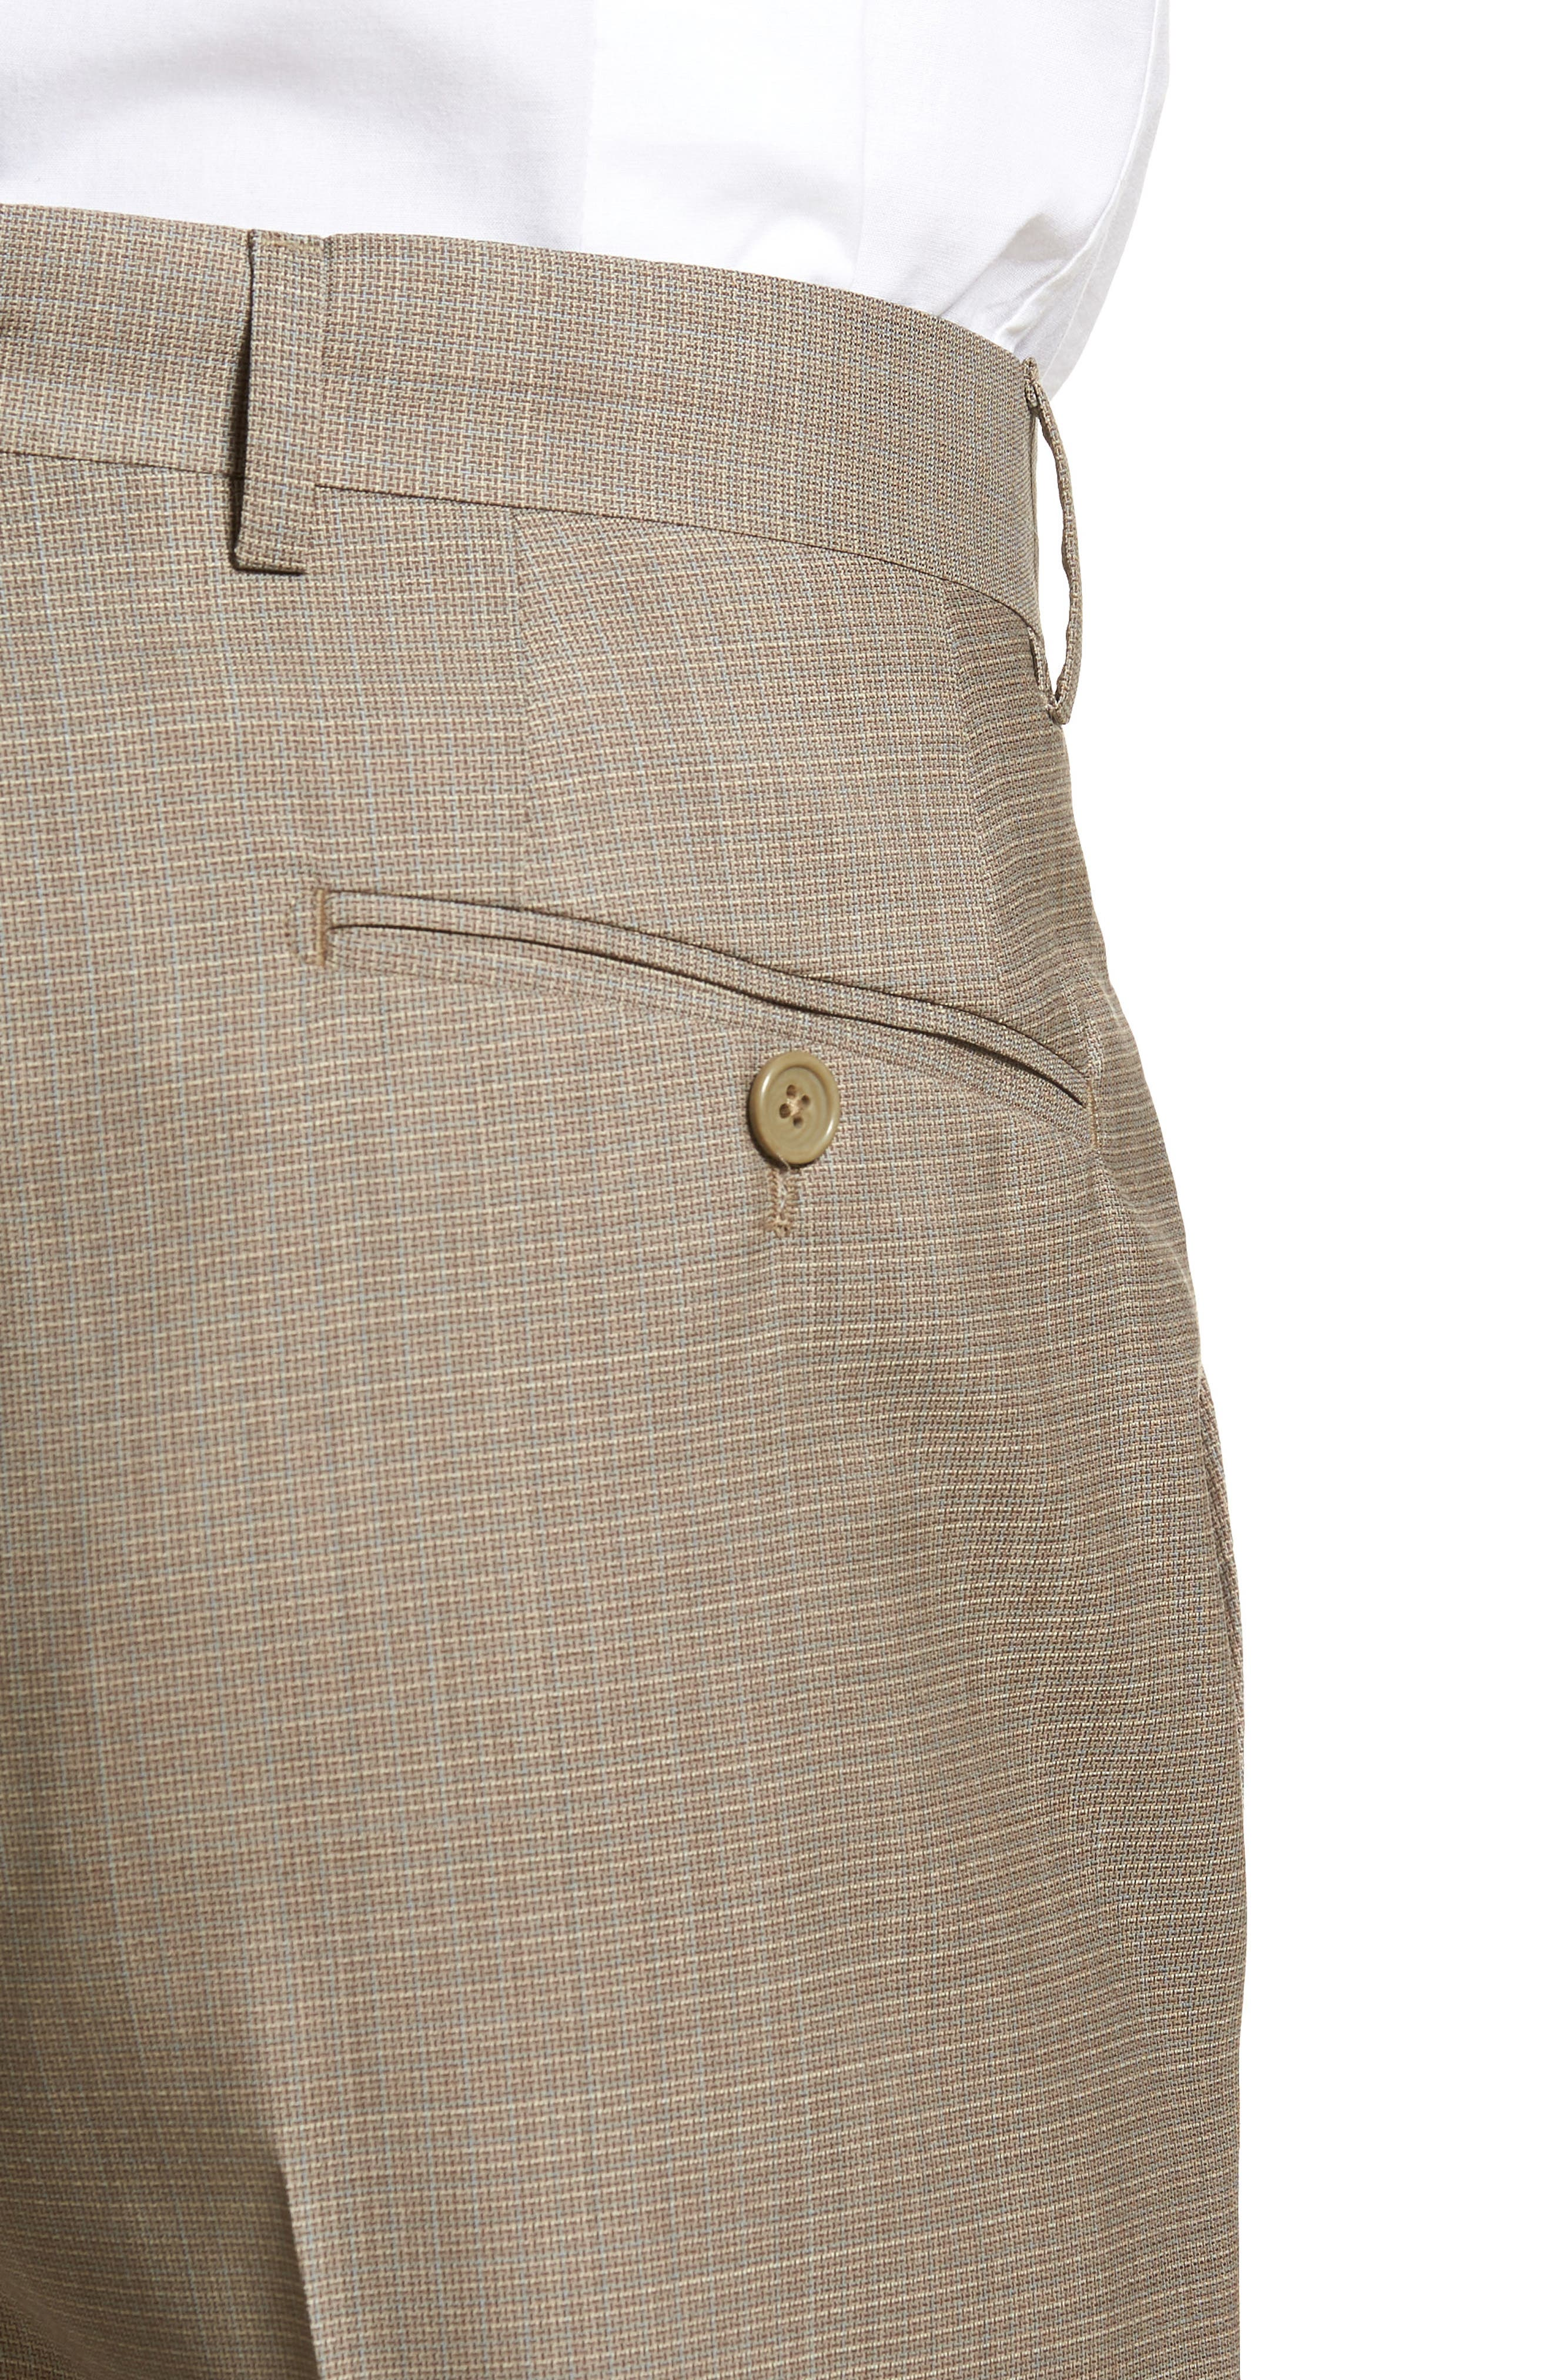 Flat Front Check Wool Trousers,                             Alternate thumbnail 4, color,                             277